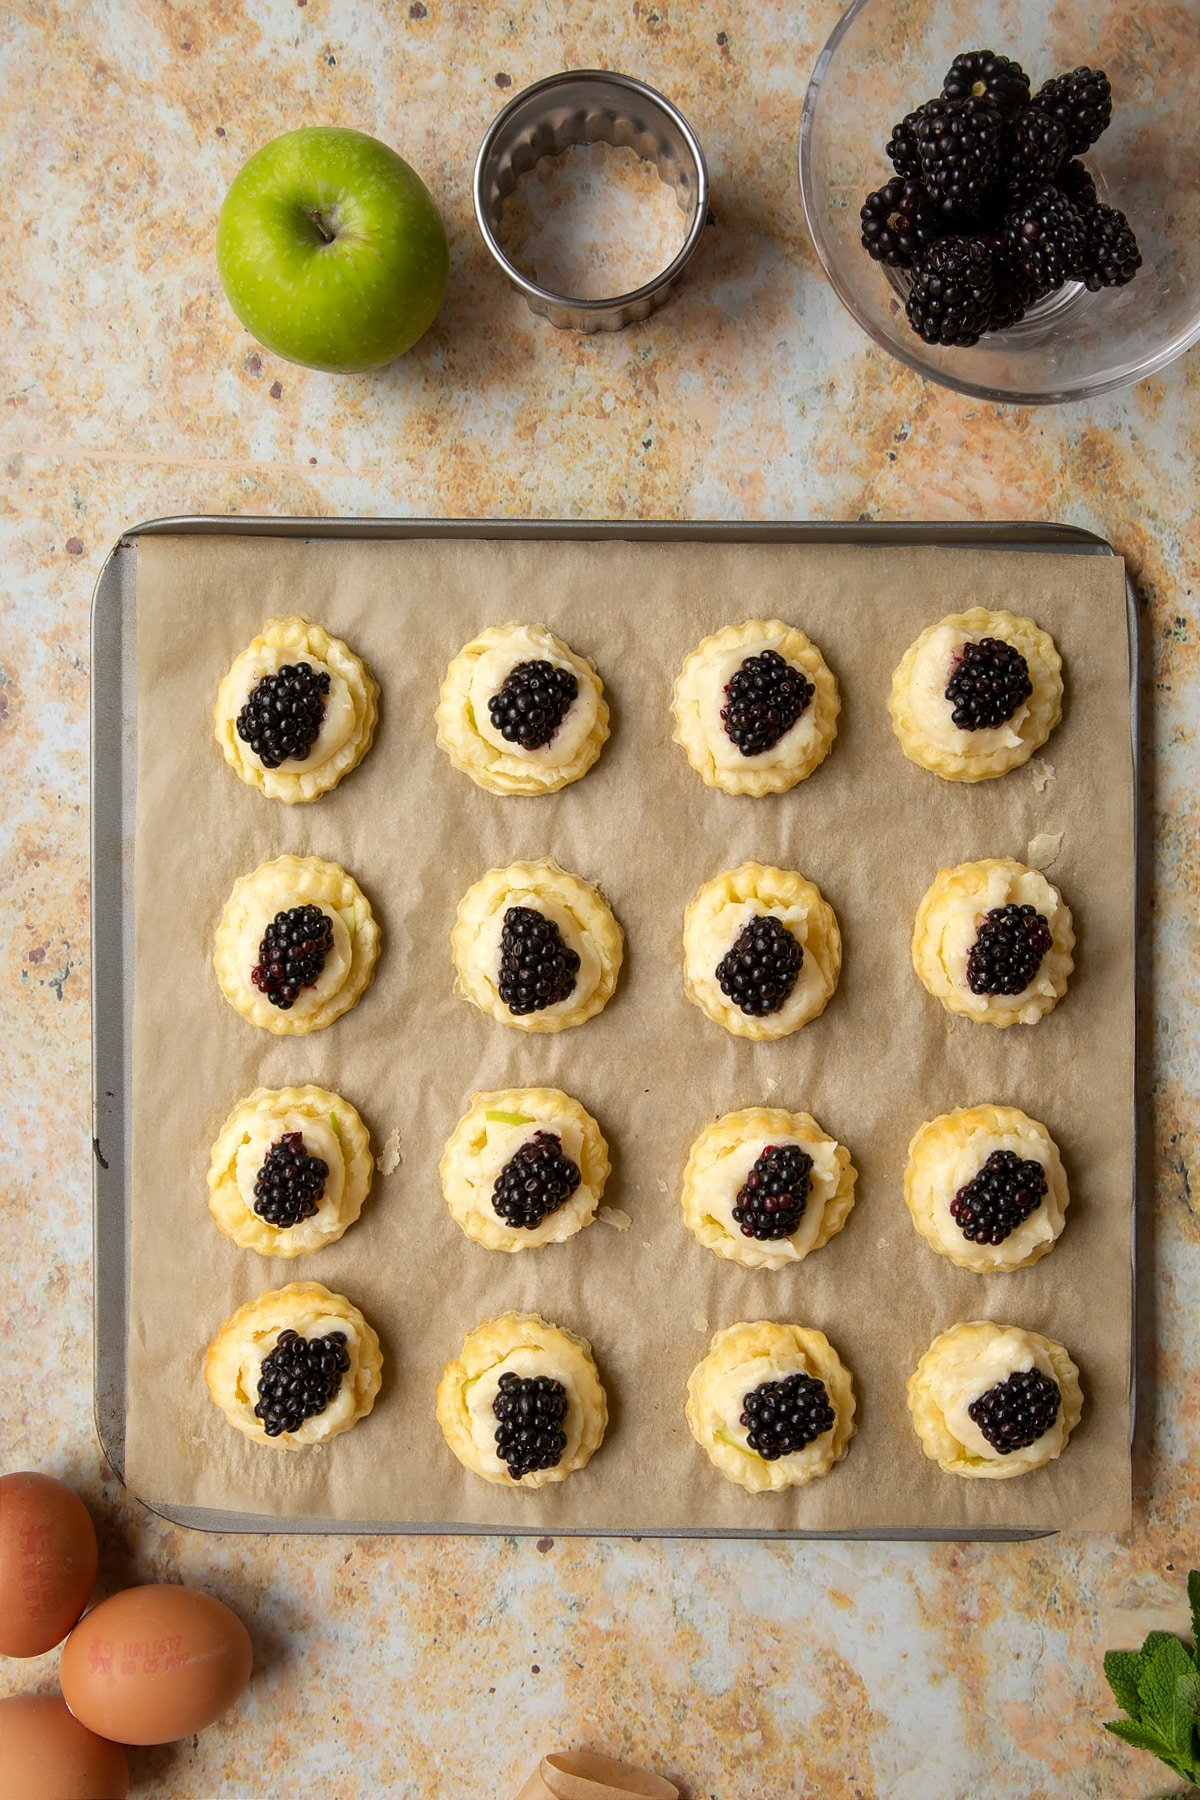 16 blackberry tartlets comprised of a small puff pastry disc topped with sliced apple, pastry cream and a blackberry sit on a lined baking sheet, ready to be baked.